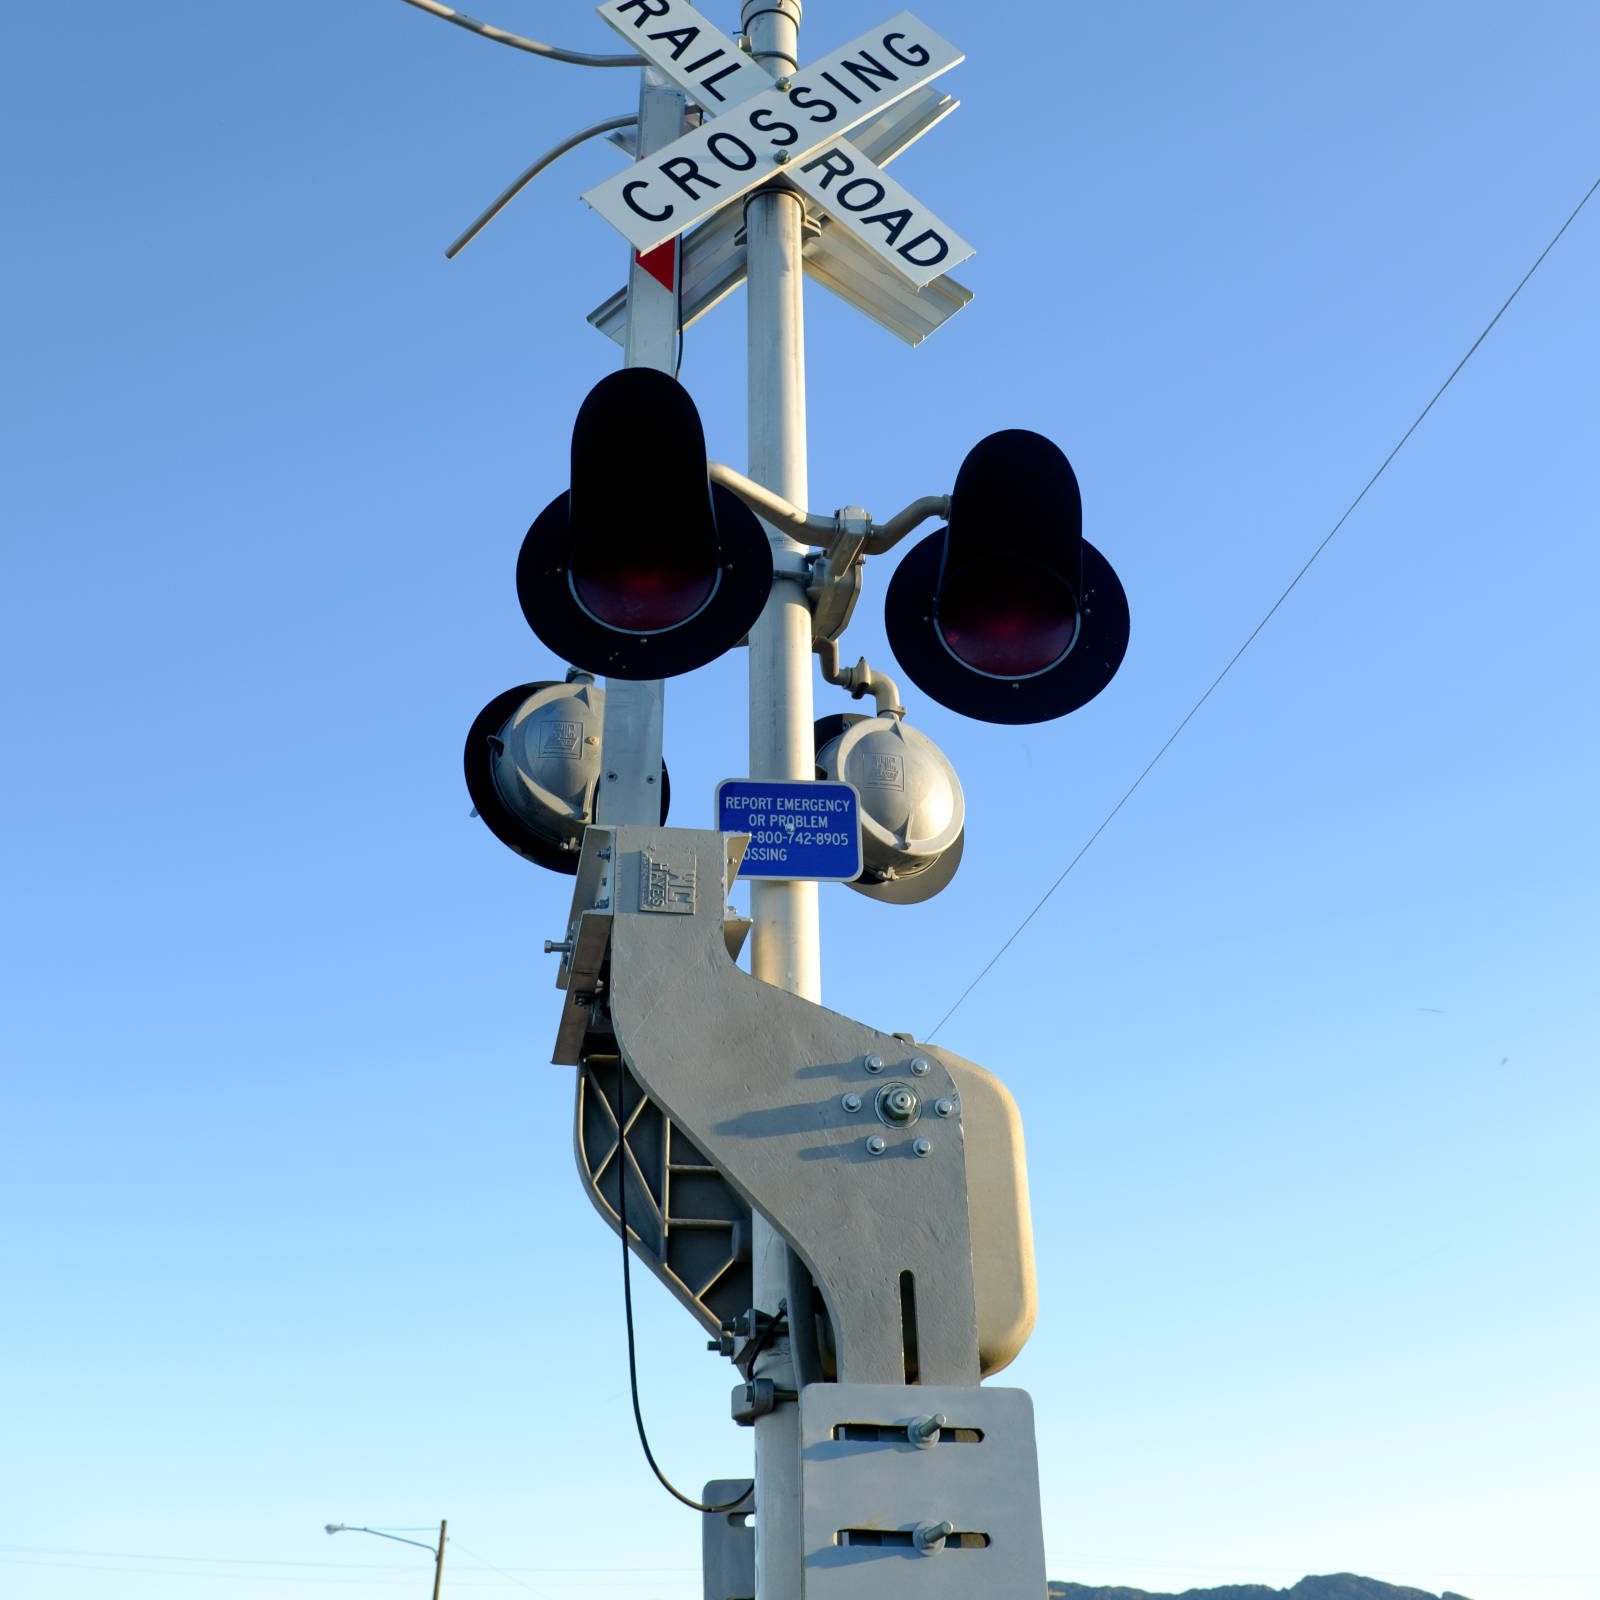 Hot Dip Galvanized Counterweights Support Railroad Crossing